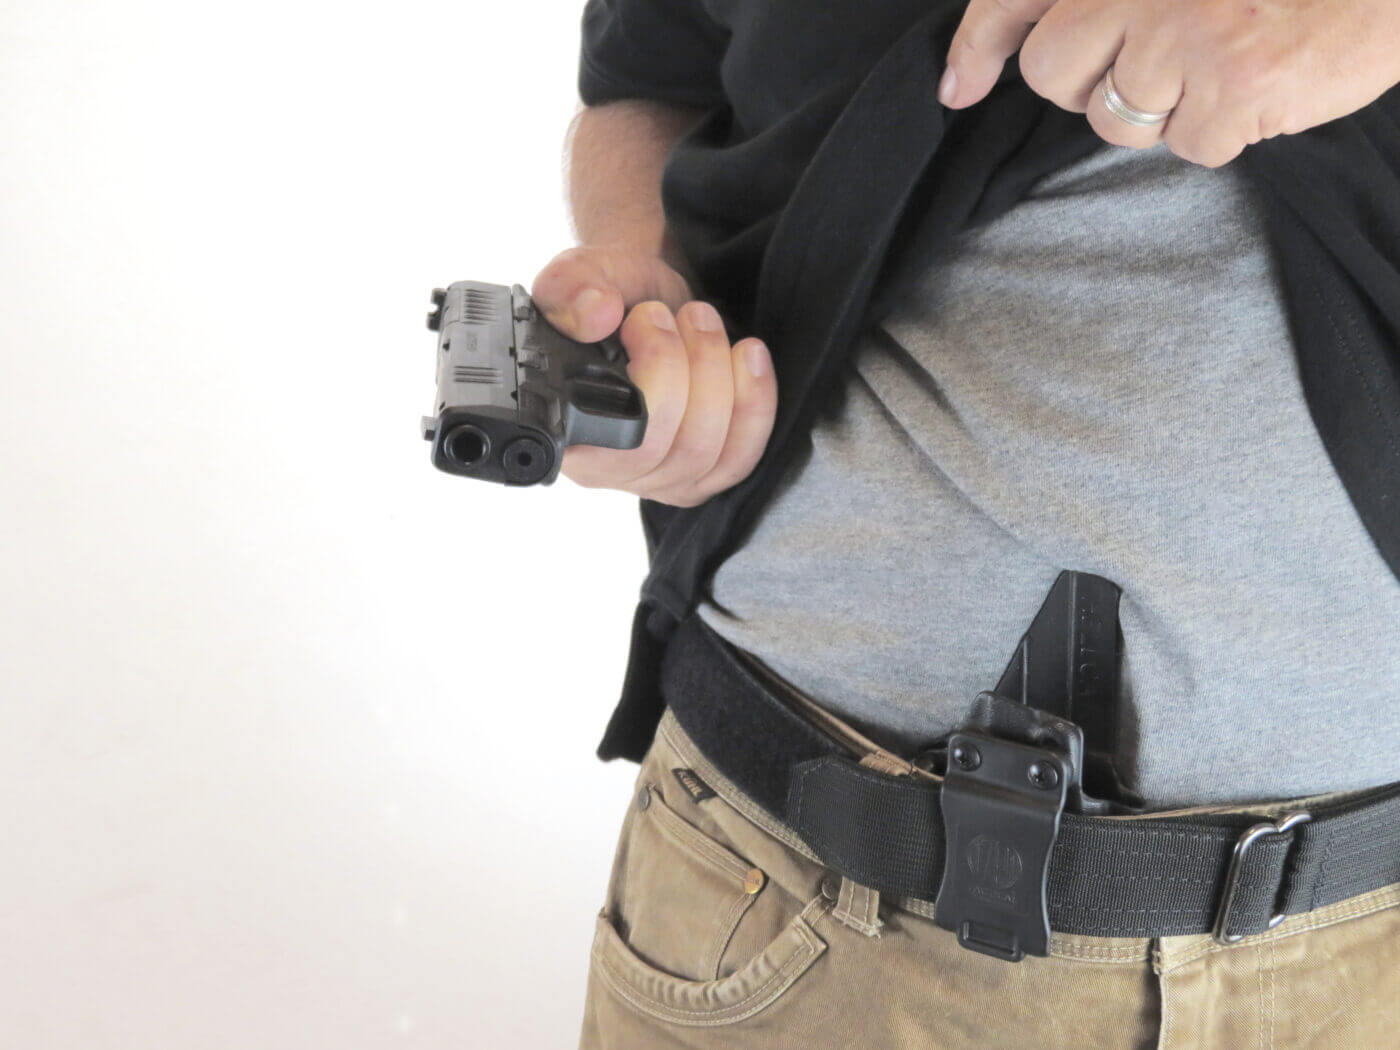 Drawing a CCW pistol from appendix concealment position